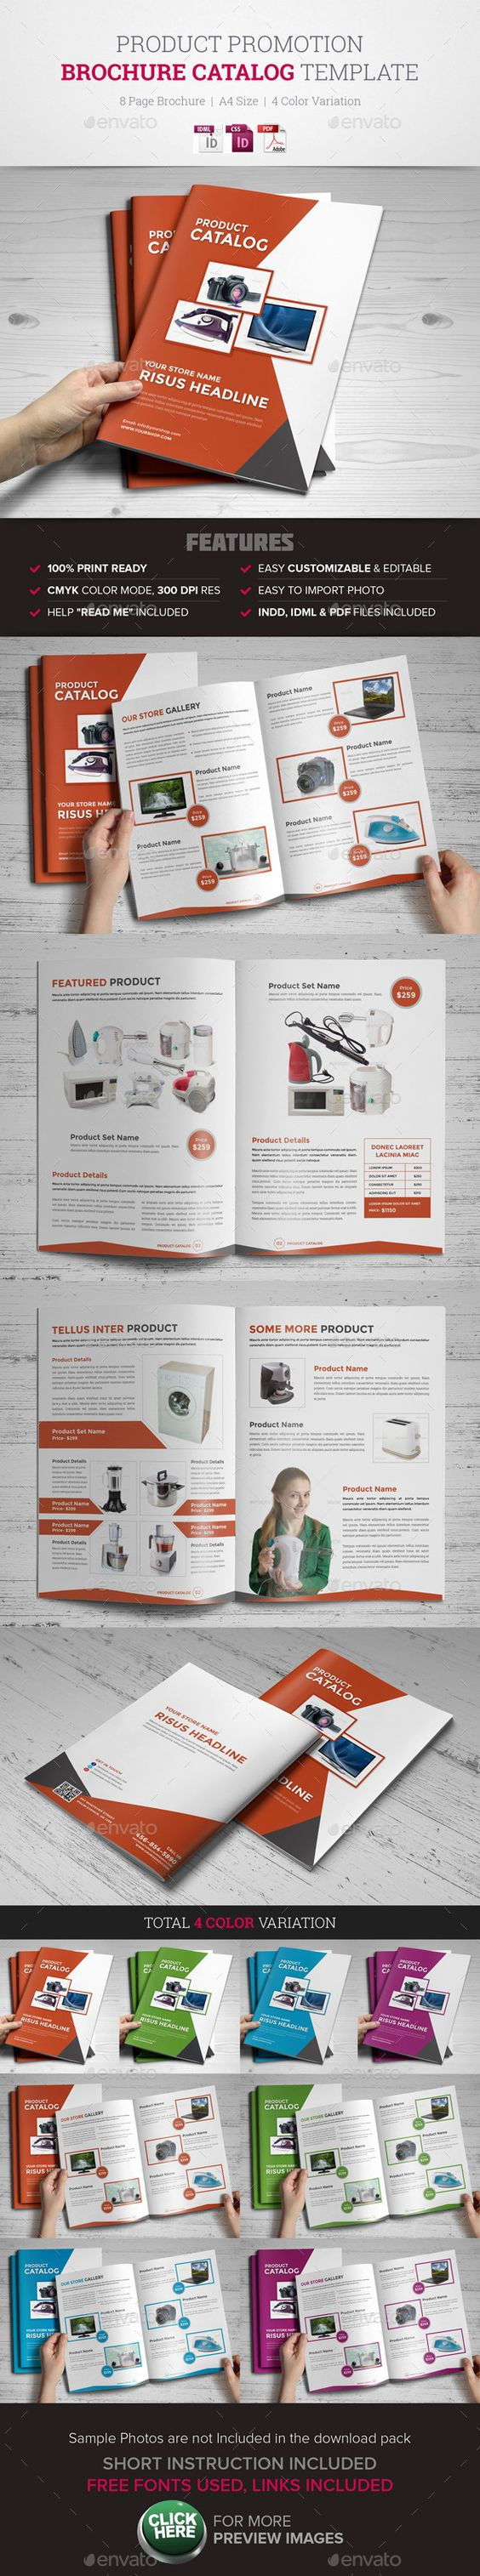 Product promotion catalog indesign template products promotion and brochures for Catalog template indesign